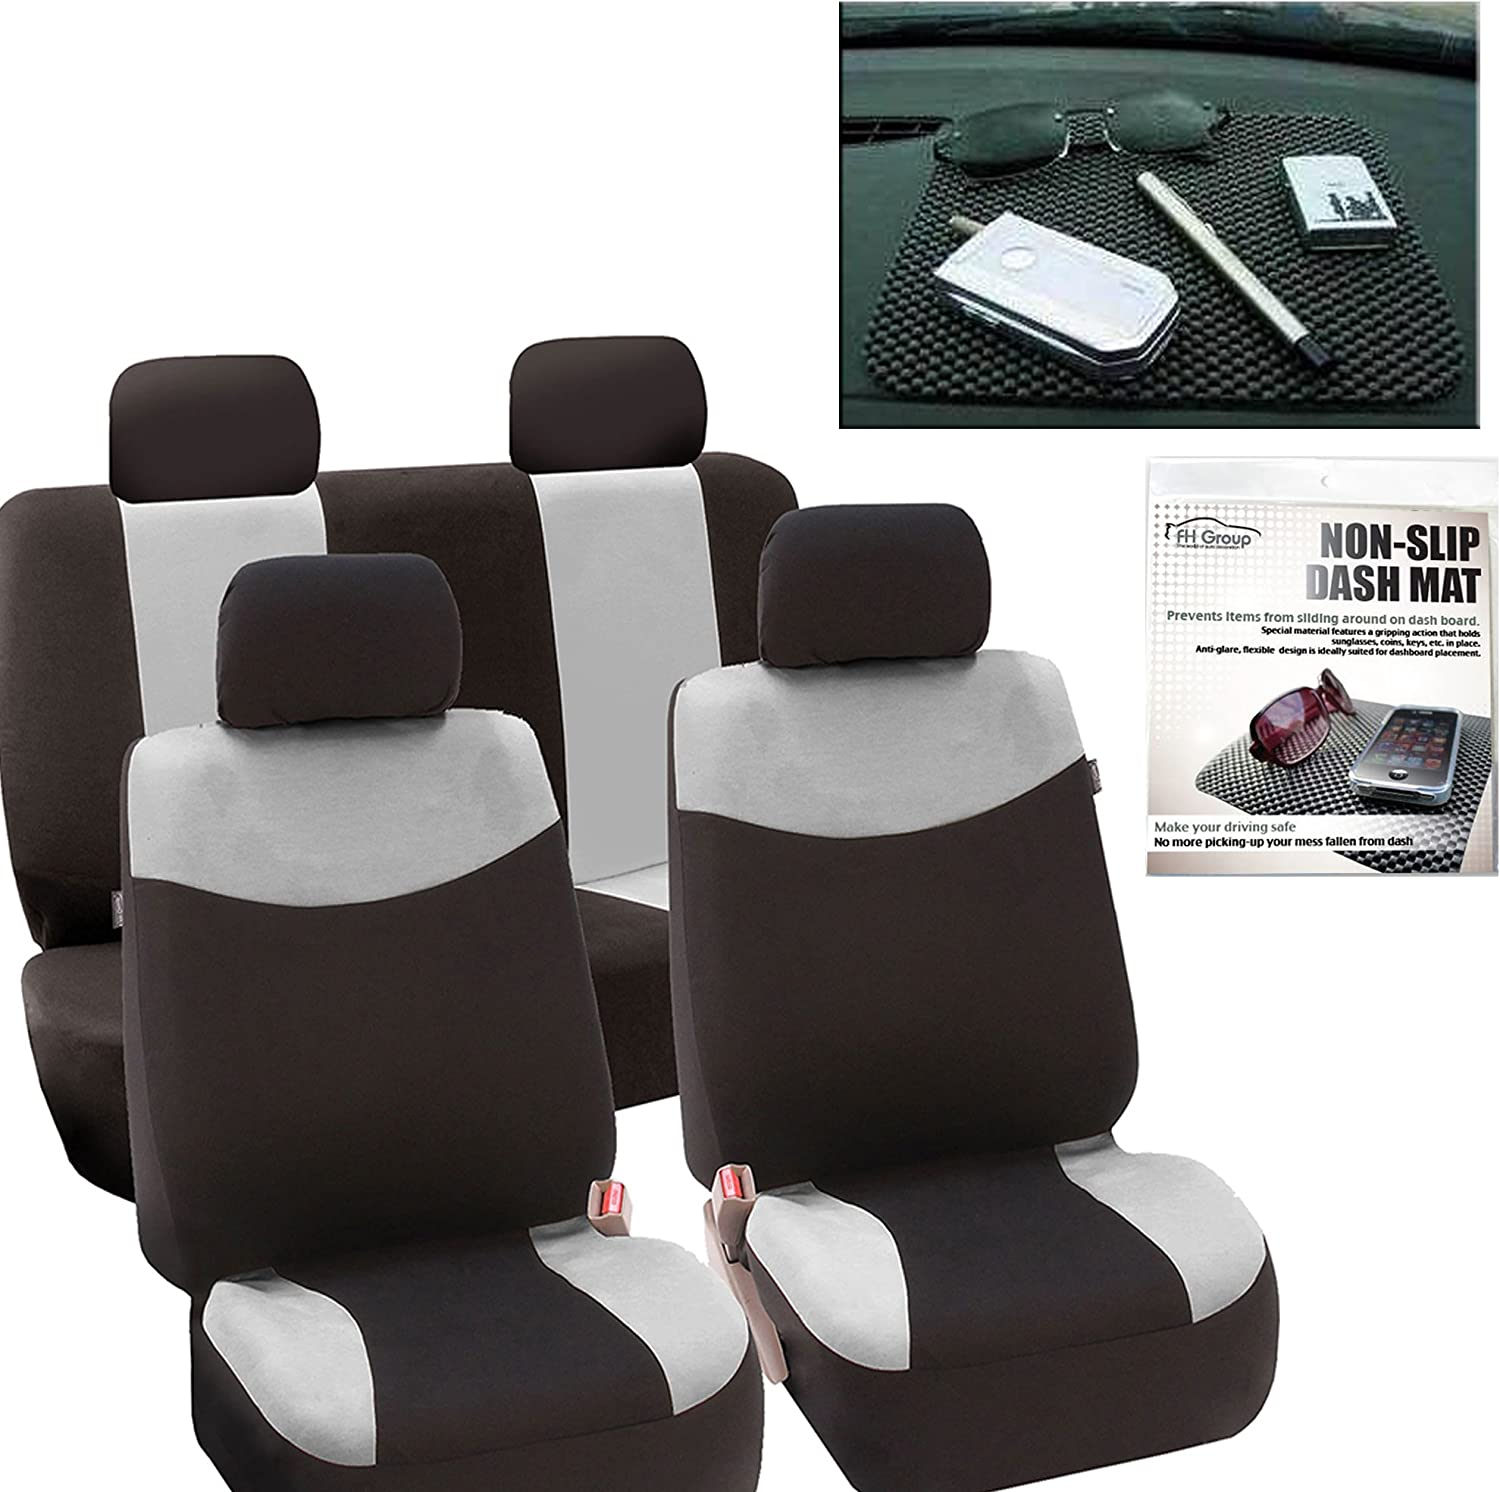 FH Group FH-FB056114 Modern Flat Cloth Car Seat Covers Gray Color FH1002 Non-Slip Dash Grip Pad- Fit Most Car, Truck, SUV, or Van